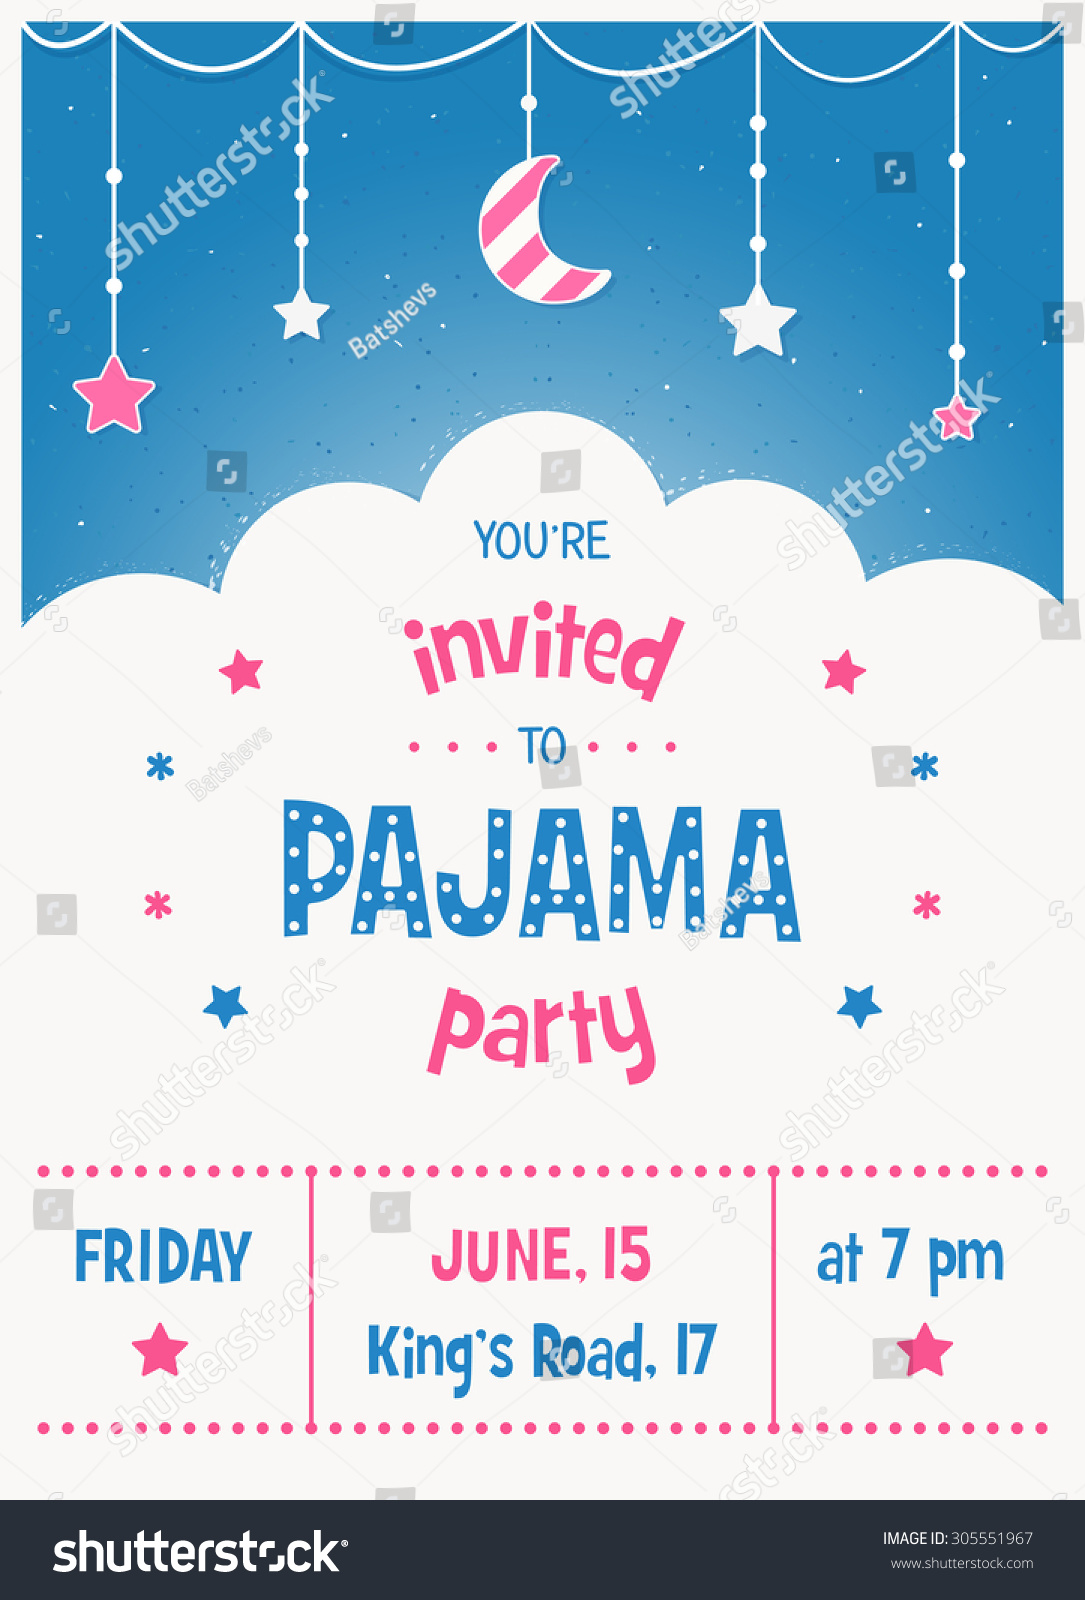 pajama party free flyer psd template facebook cover by